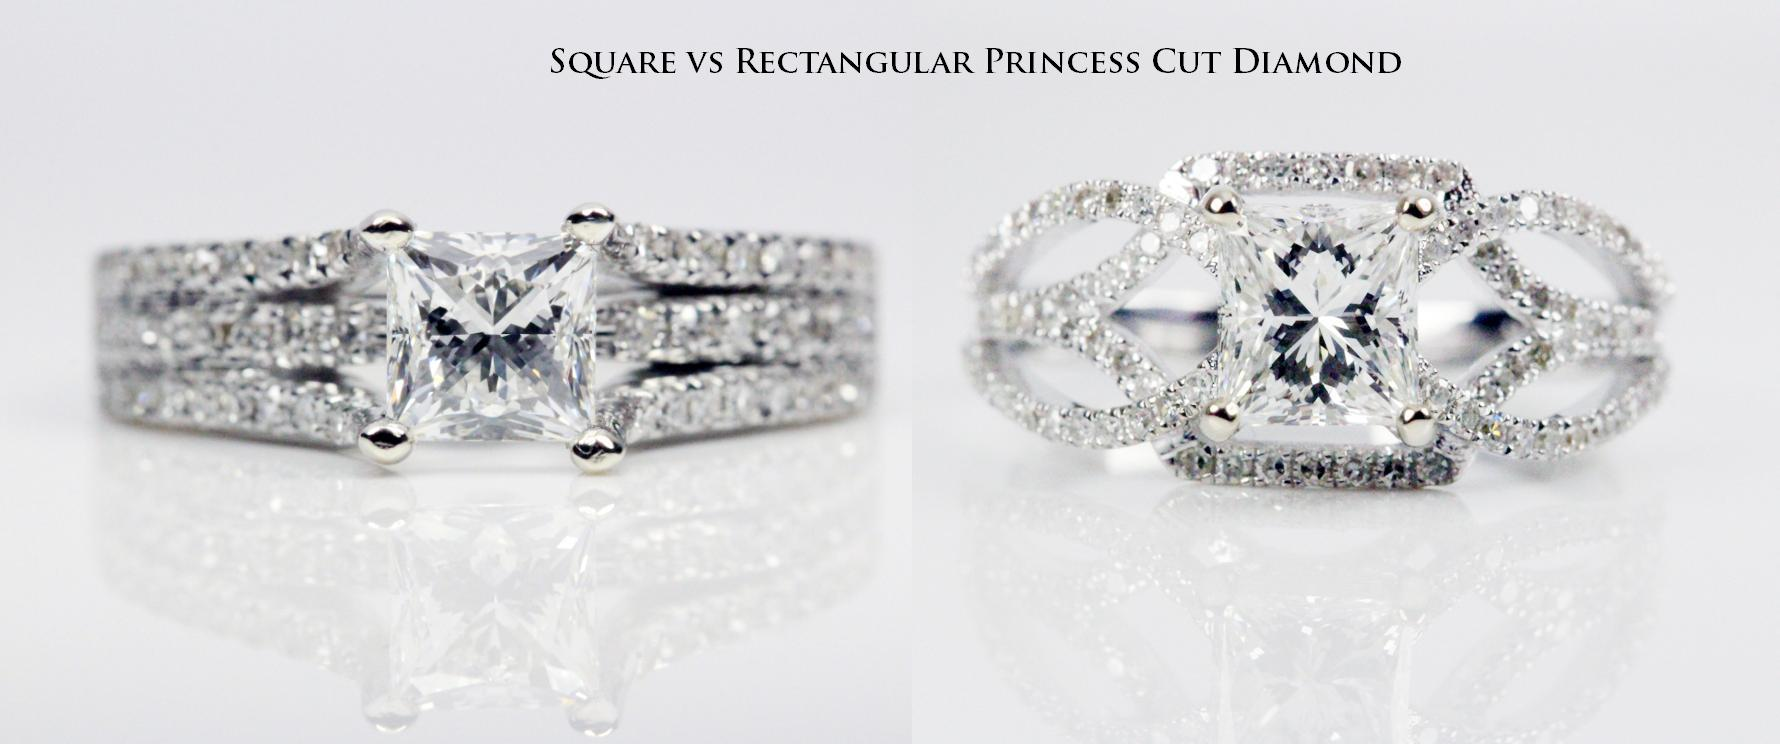 Princess cut diamonds assessment chart guide in depth information square vs rectangular princess cut diamond nvjuhfo Images